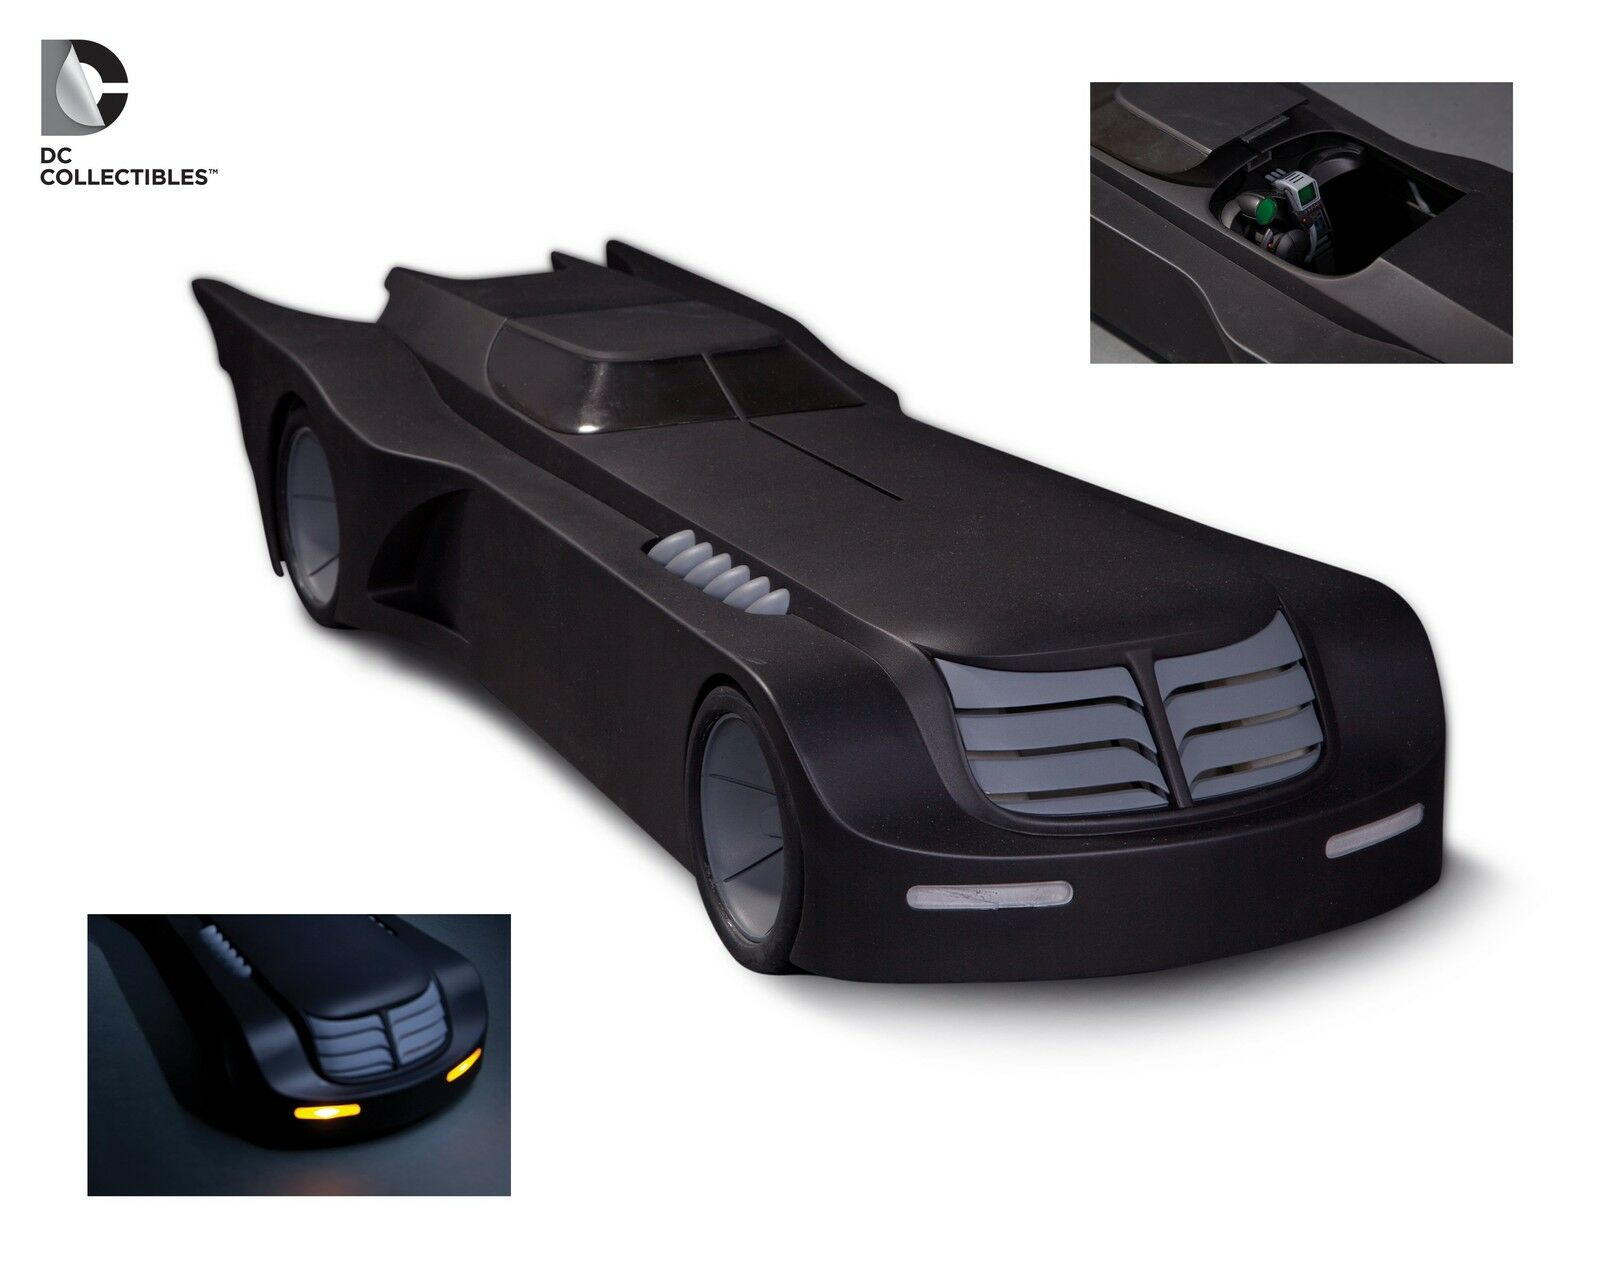 DC COLLECTIBLES: BATMAN ANIMATED SERIES BATMOBILE